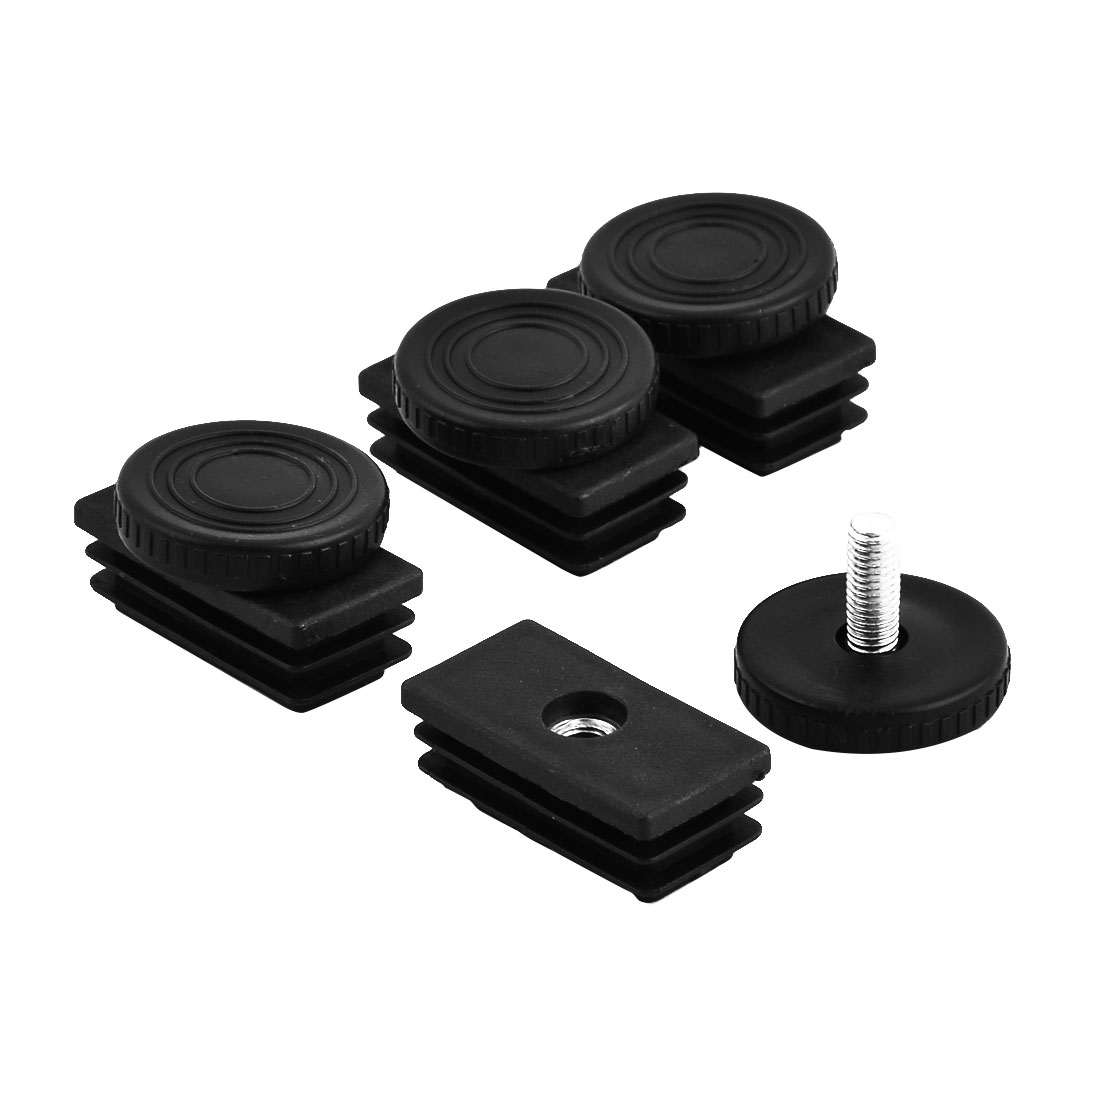 Home Furniture Table Adjustable Leg Base Tube Inserts Leveling Feet Black 4 Sets